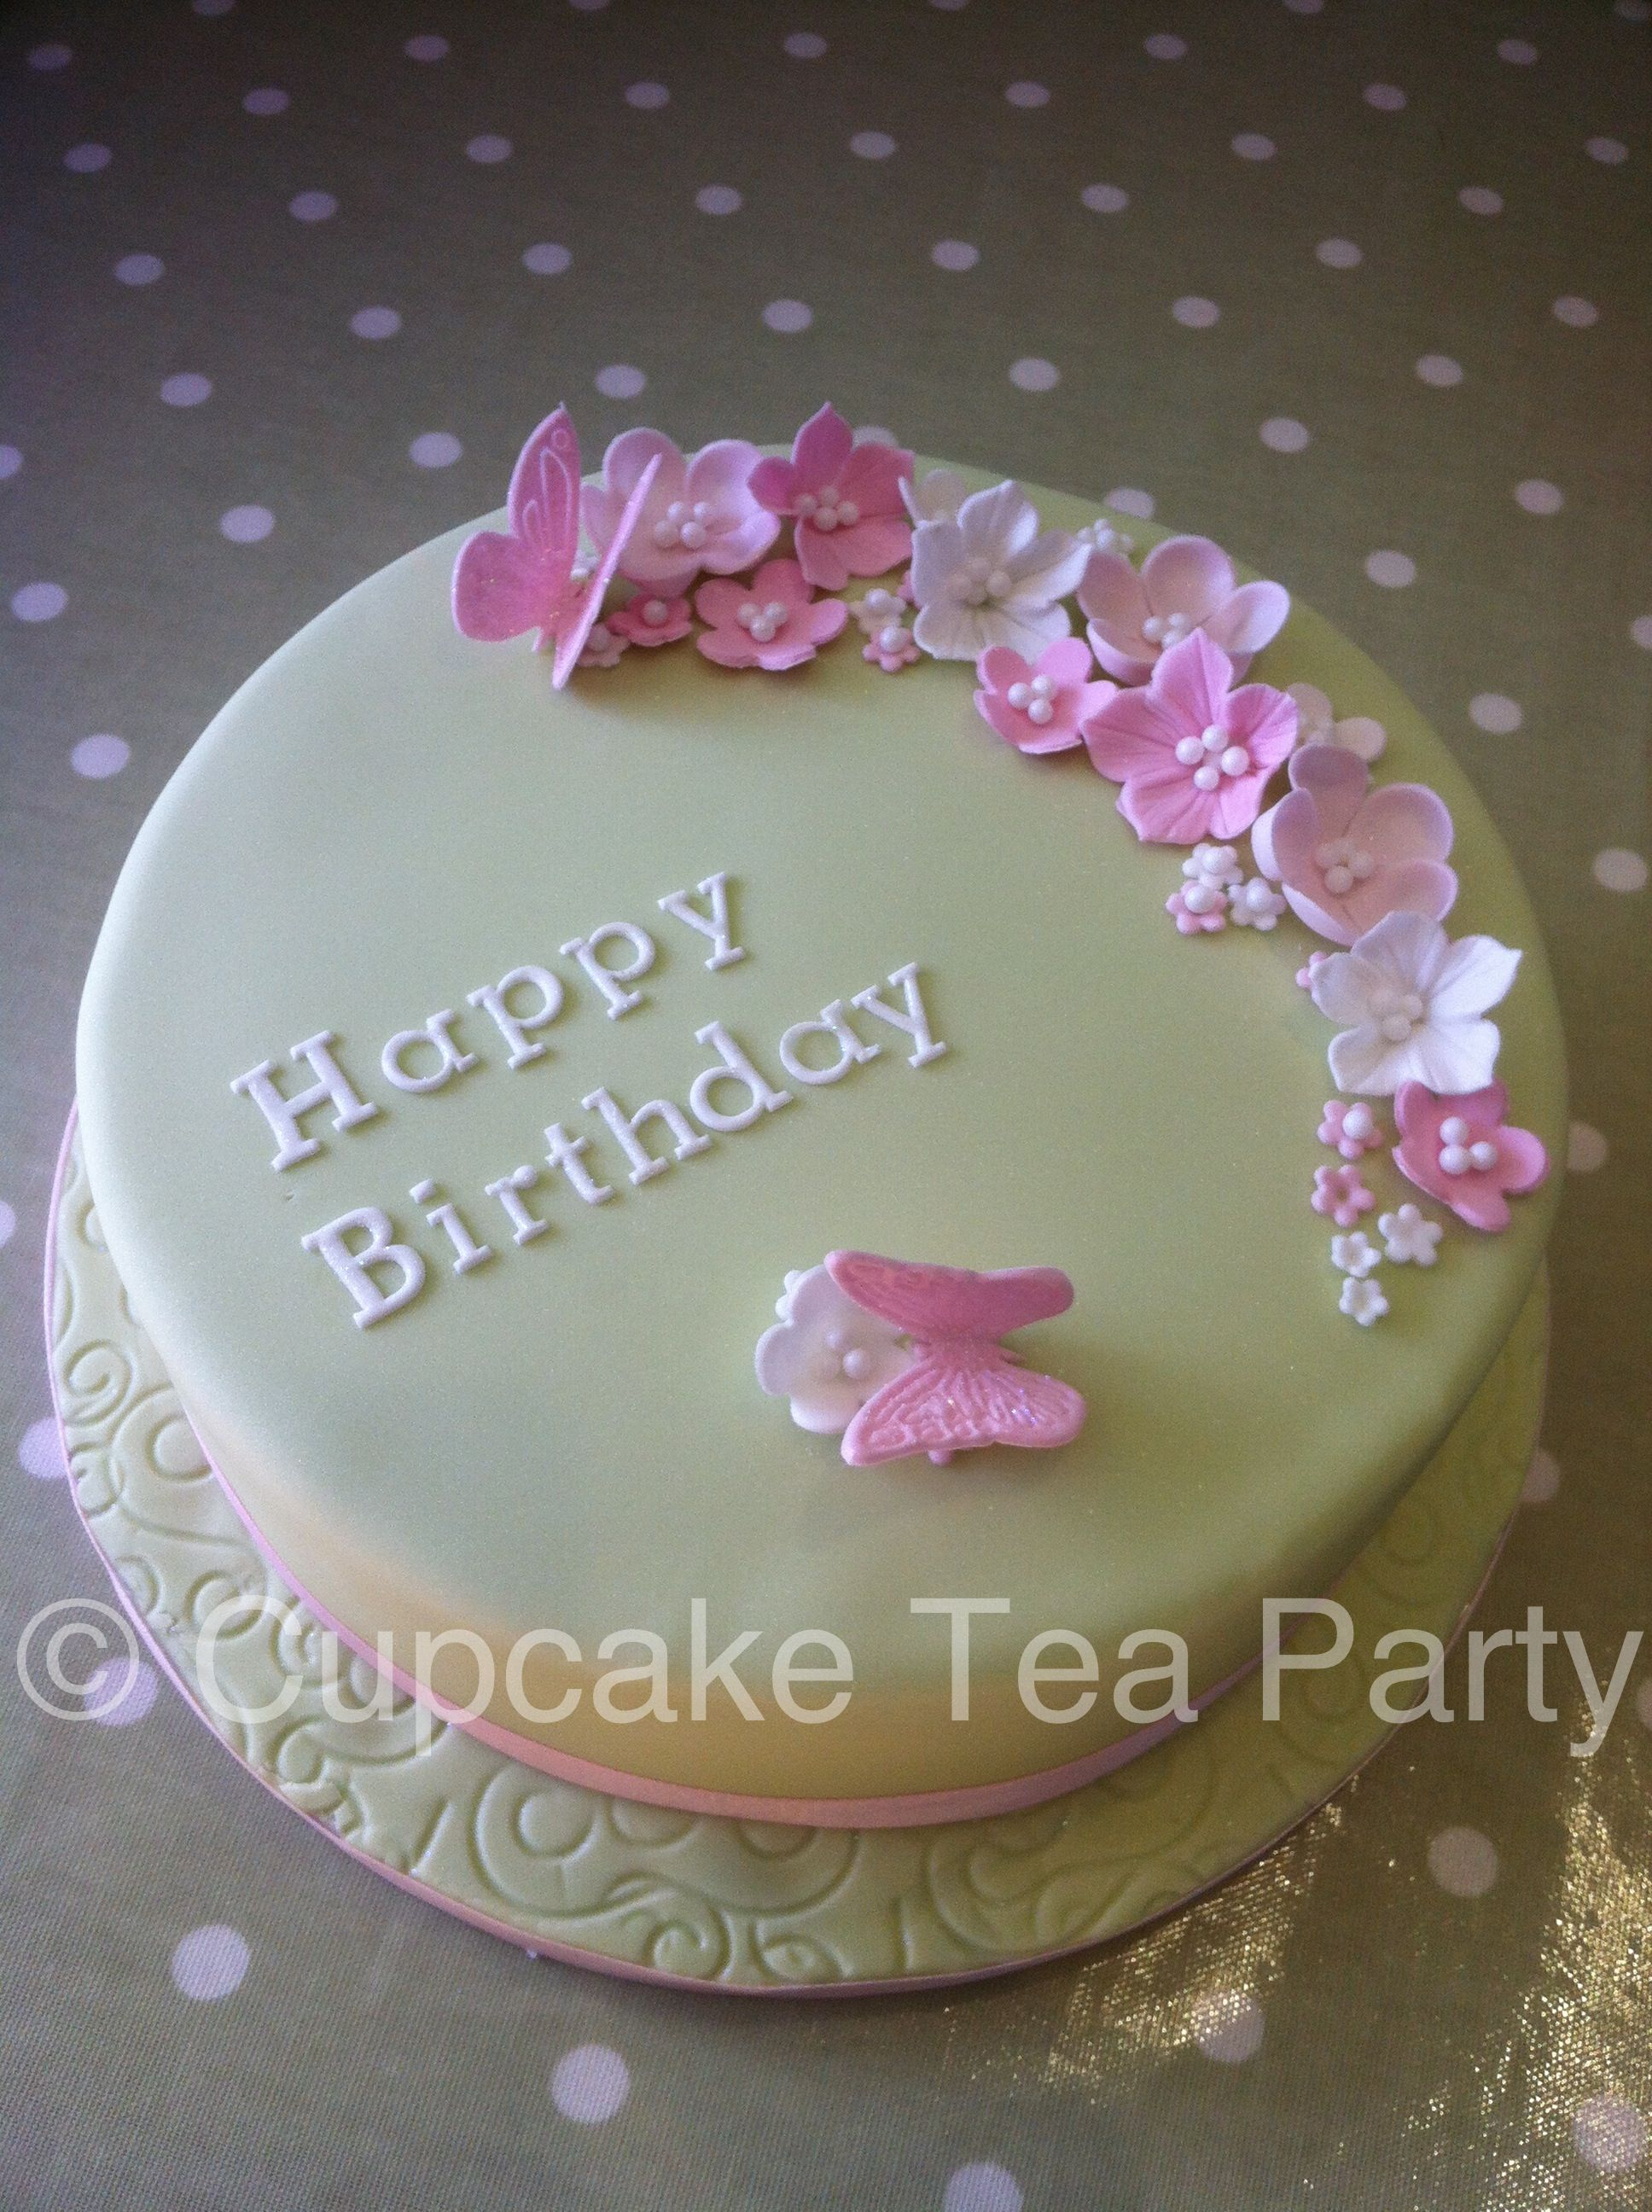 Flowers and butterfly birthday cake. www.cupcaketeaparty